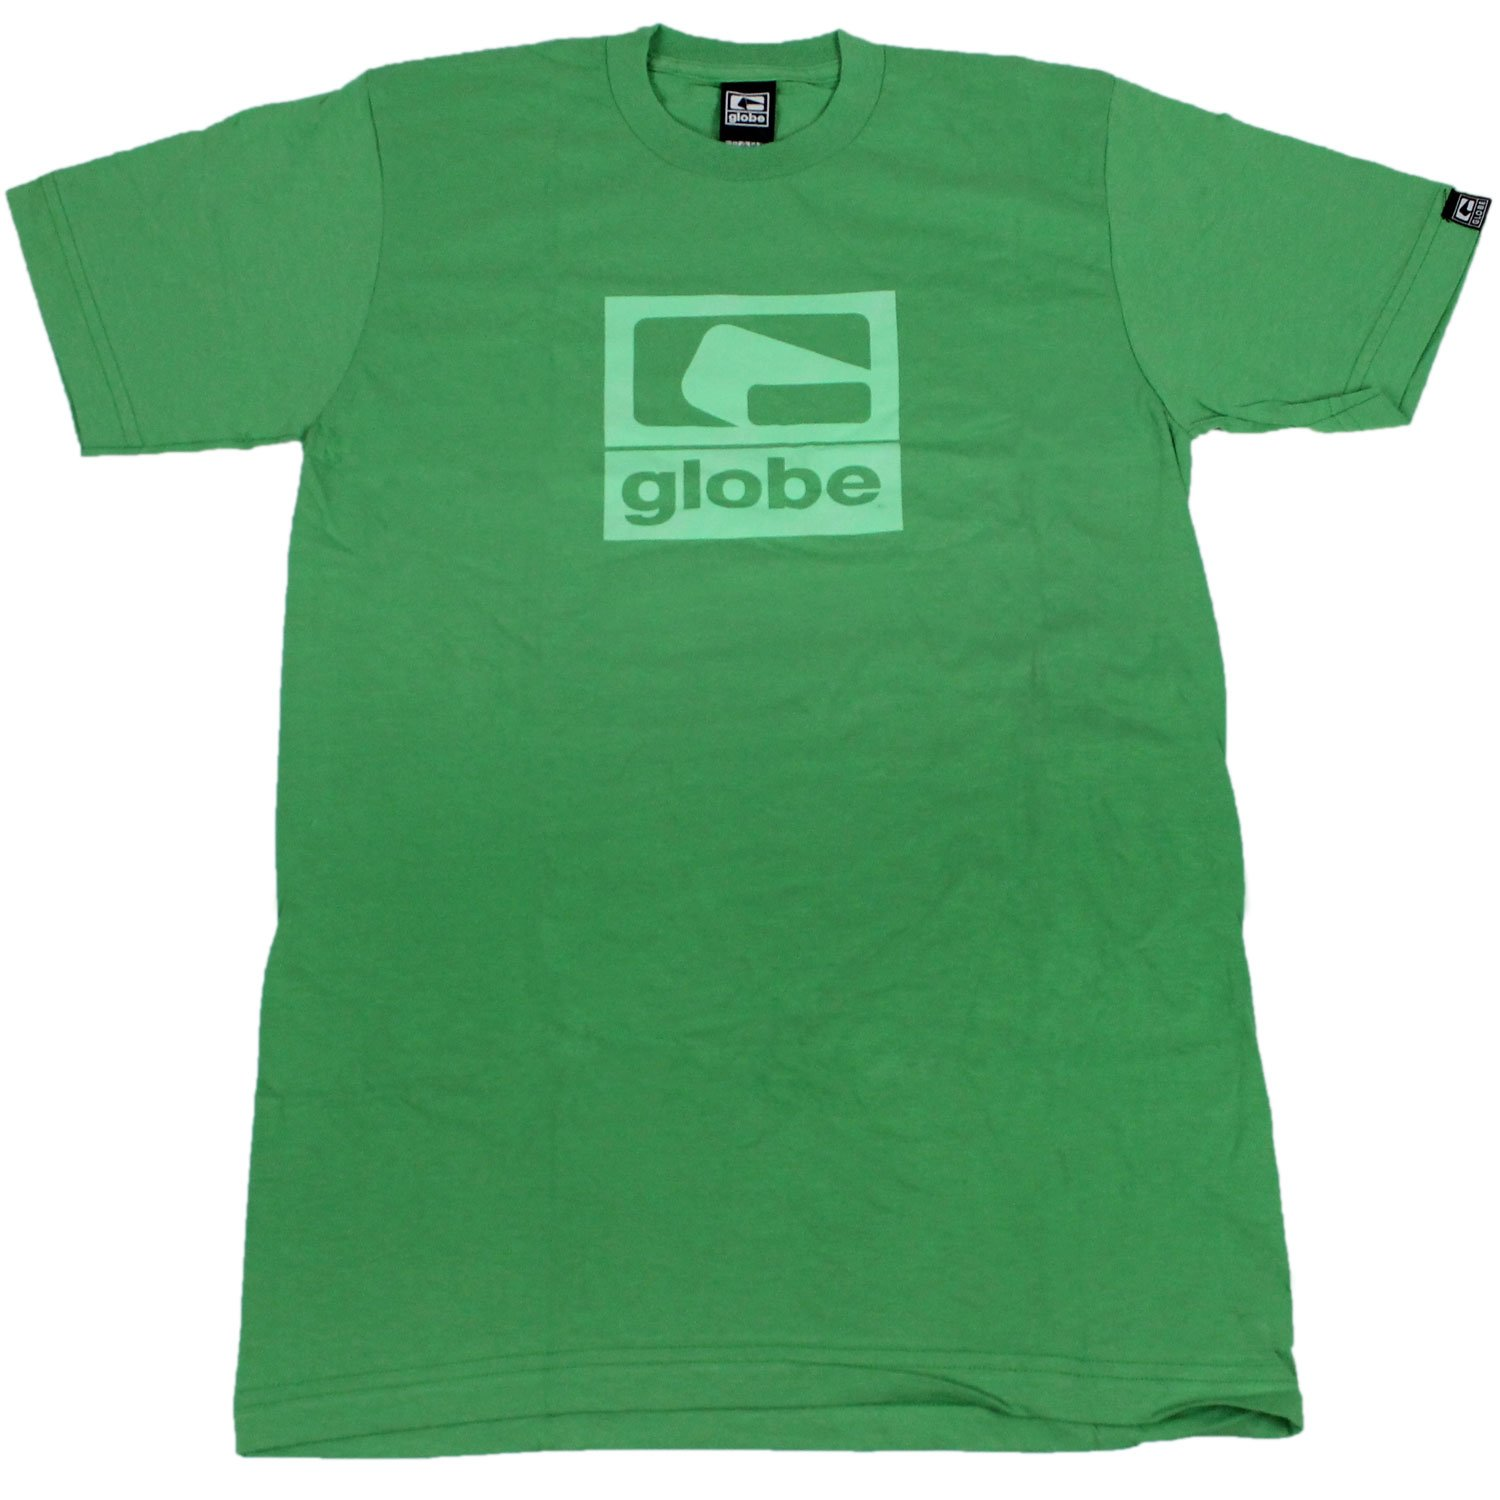 GLOBE Skate Shoes SHIRT G-2 Slim Lime Sz SMALL